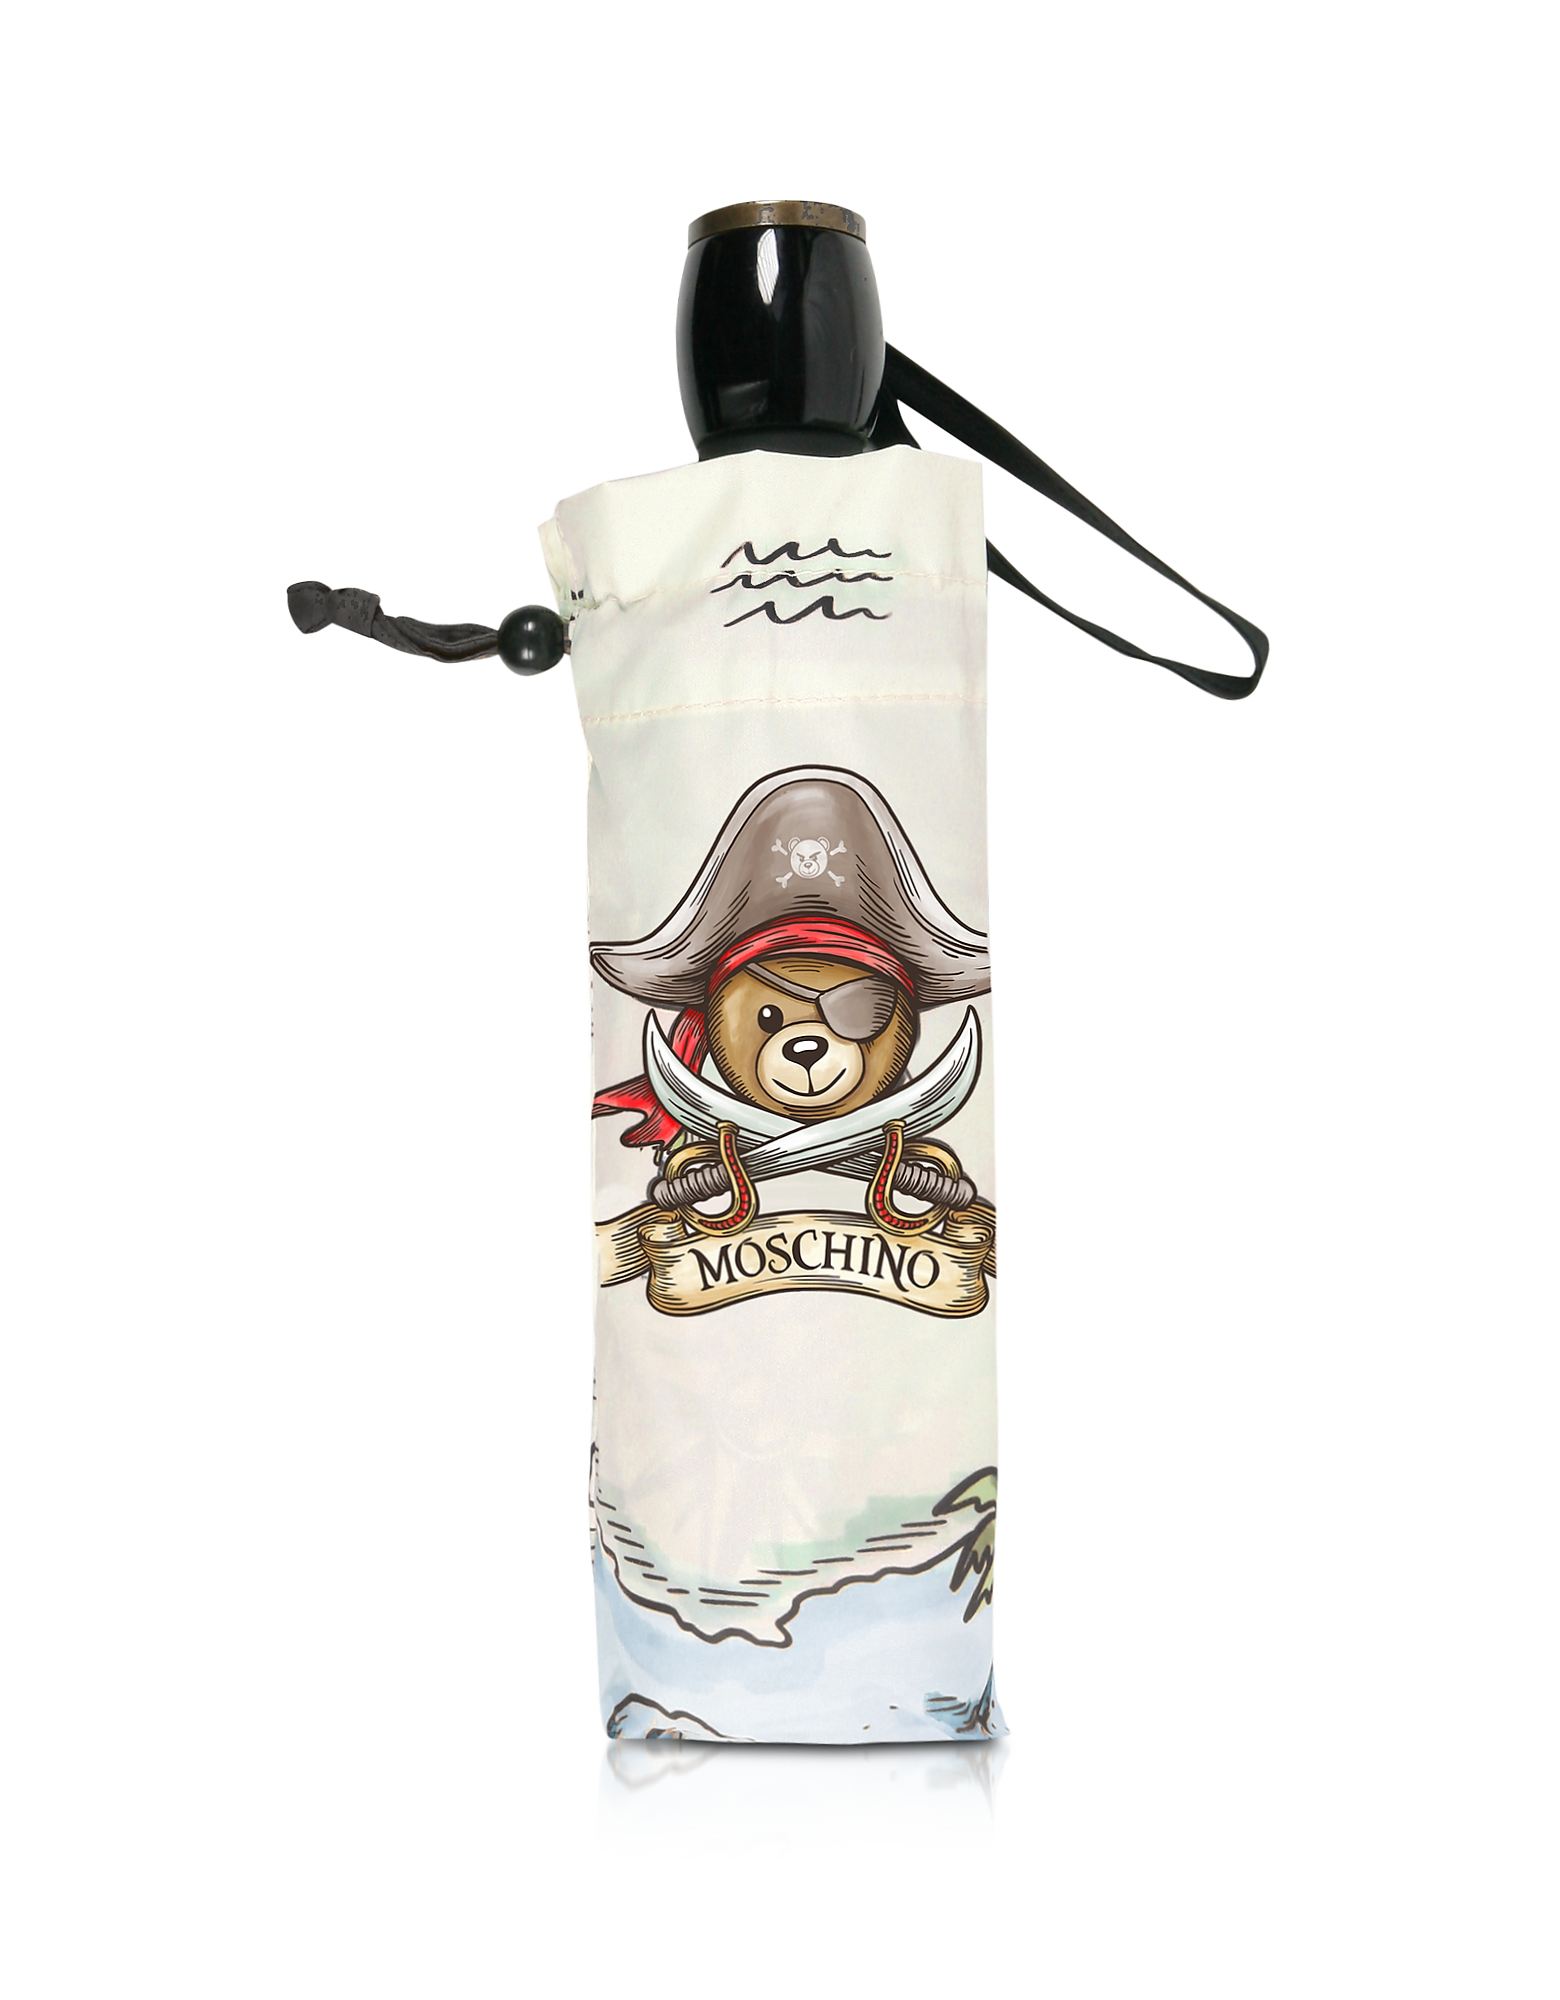 Moschino Umbrellas, Pirate Bear Grey Umbrella